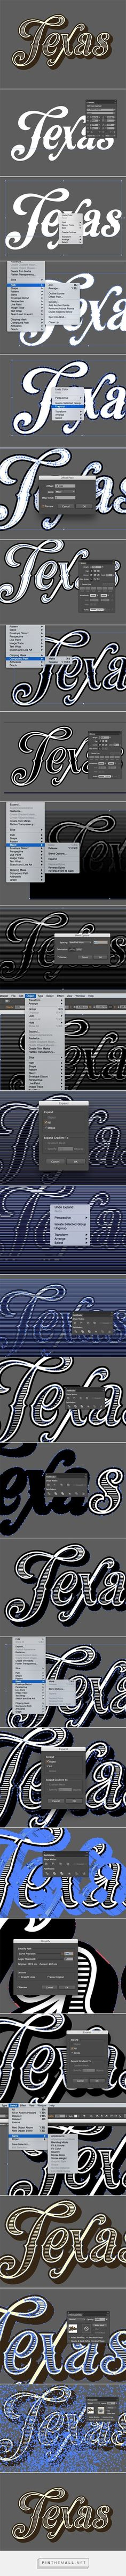 How To Create a Vintage Text Effect in Illustrator - created via pinthemall.net